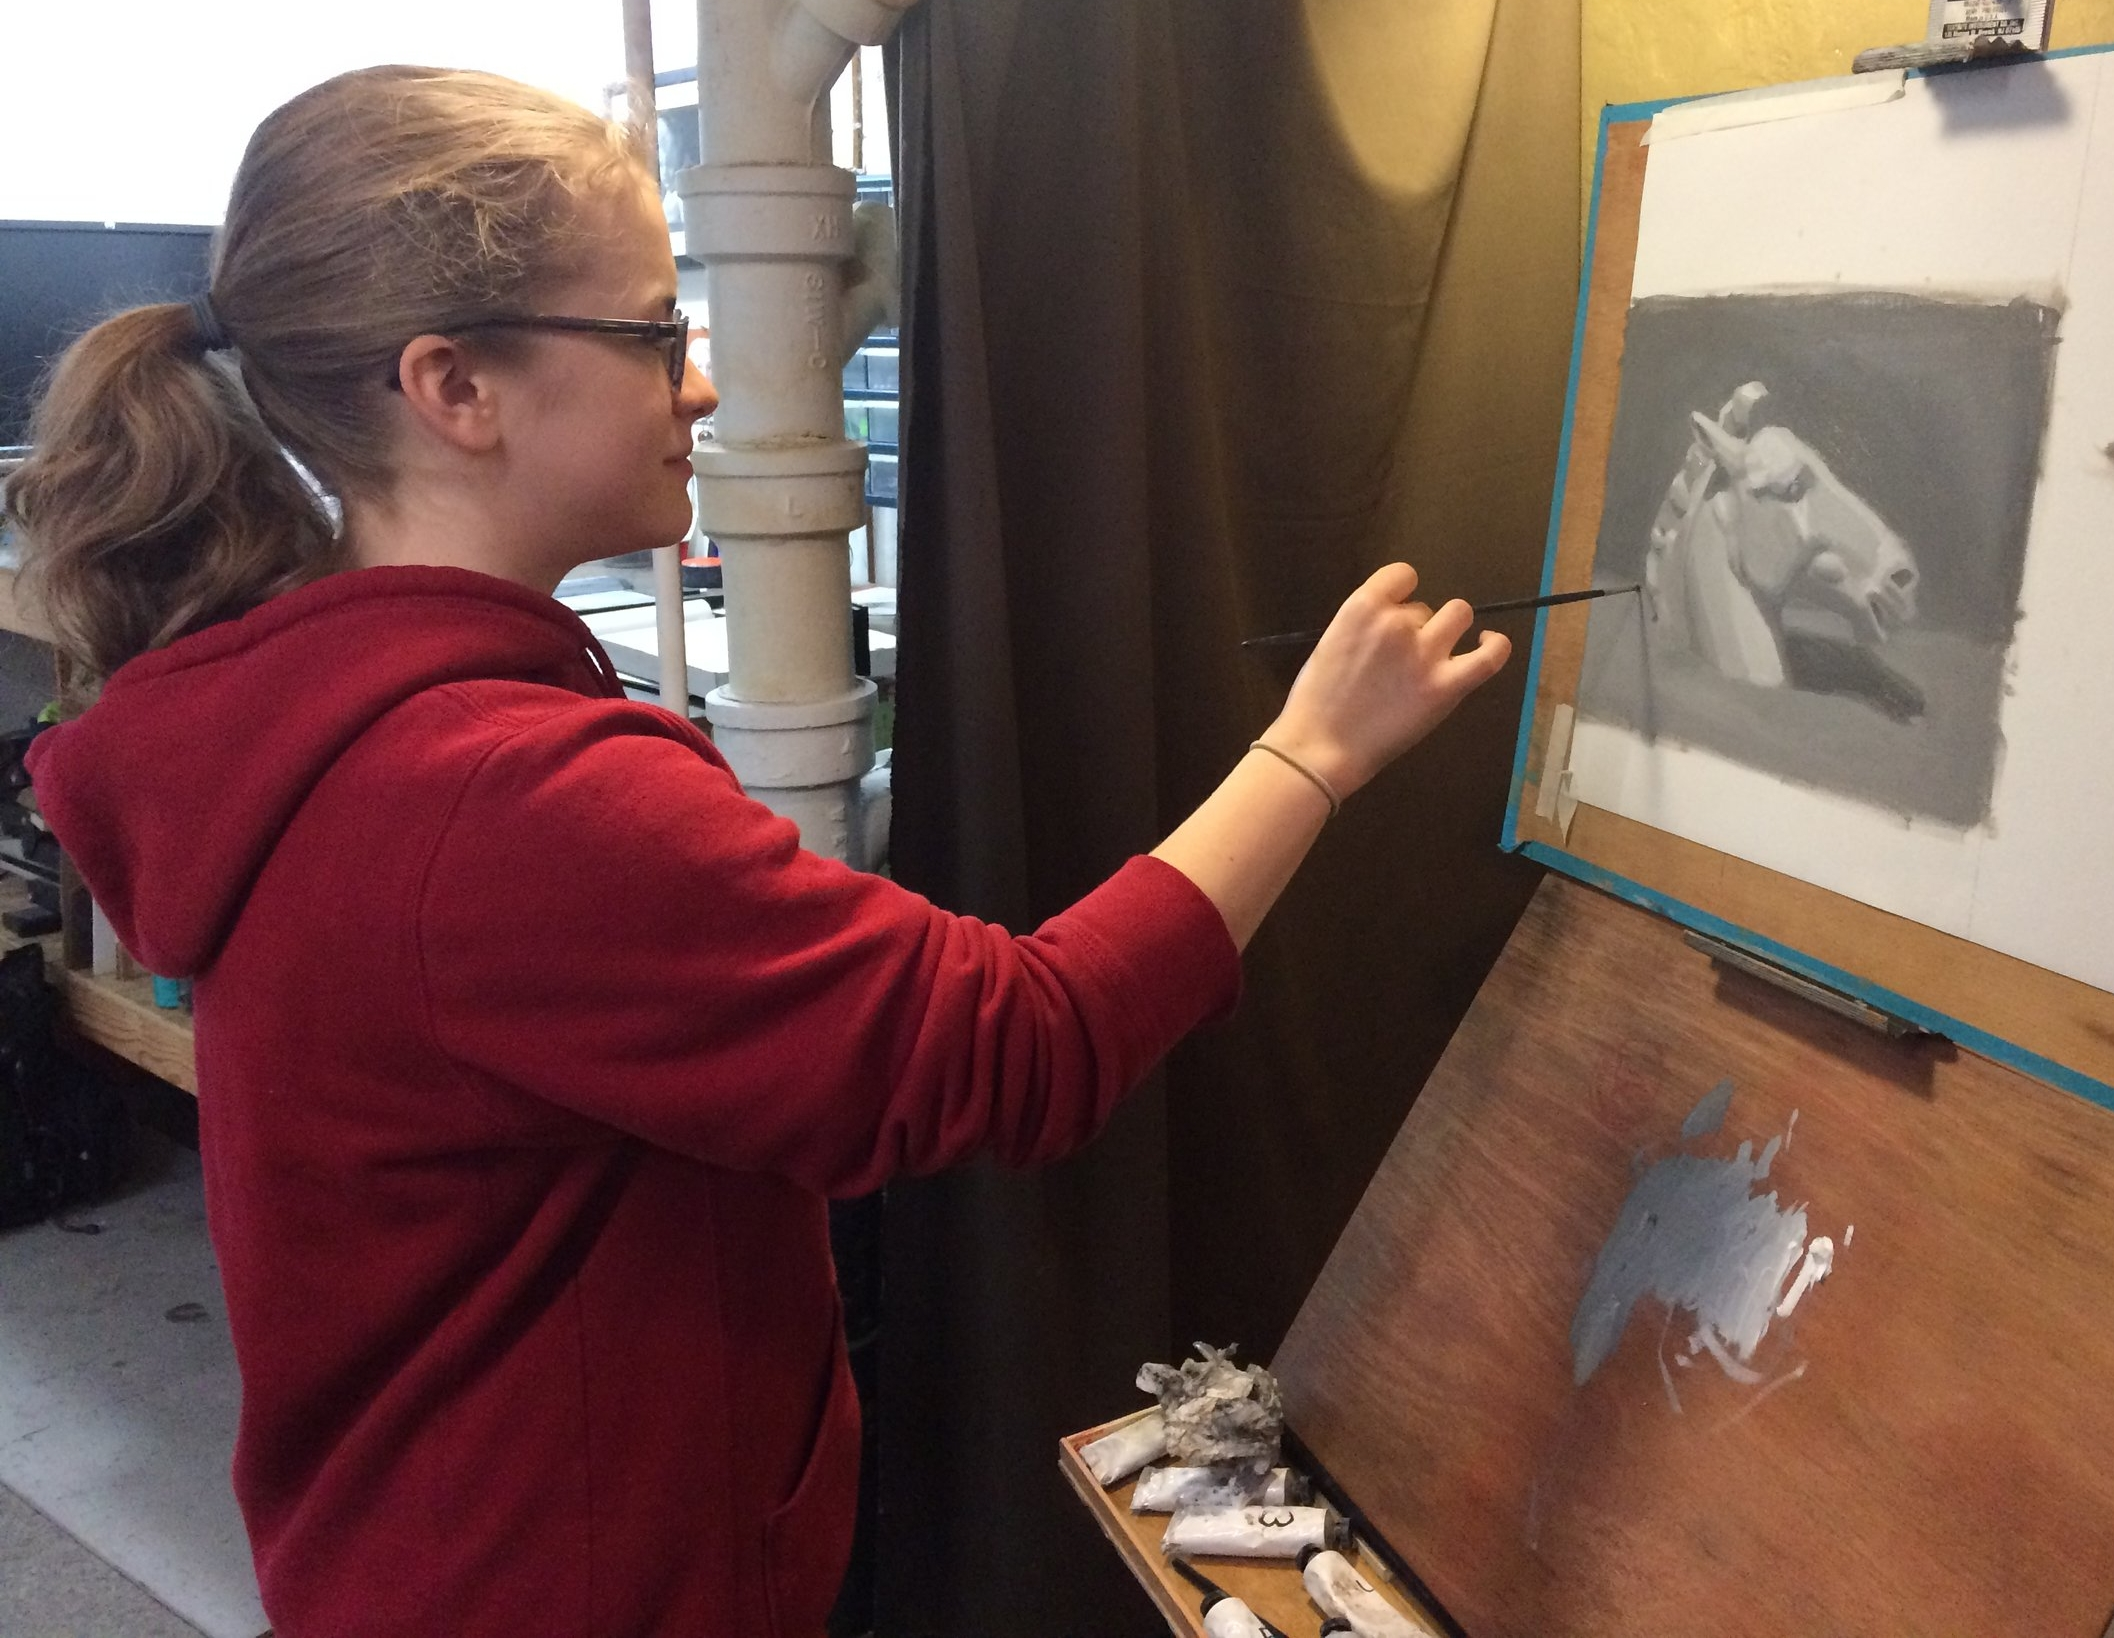 Mentored Drawing & Painting Studio - I teach the Cours de Dessin by Charles Barque, an in-depth,step-by-step approach to drawing that's tried and true.